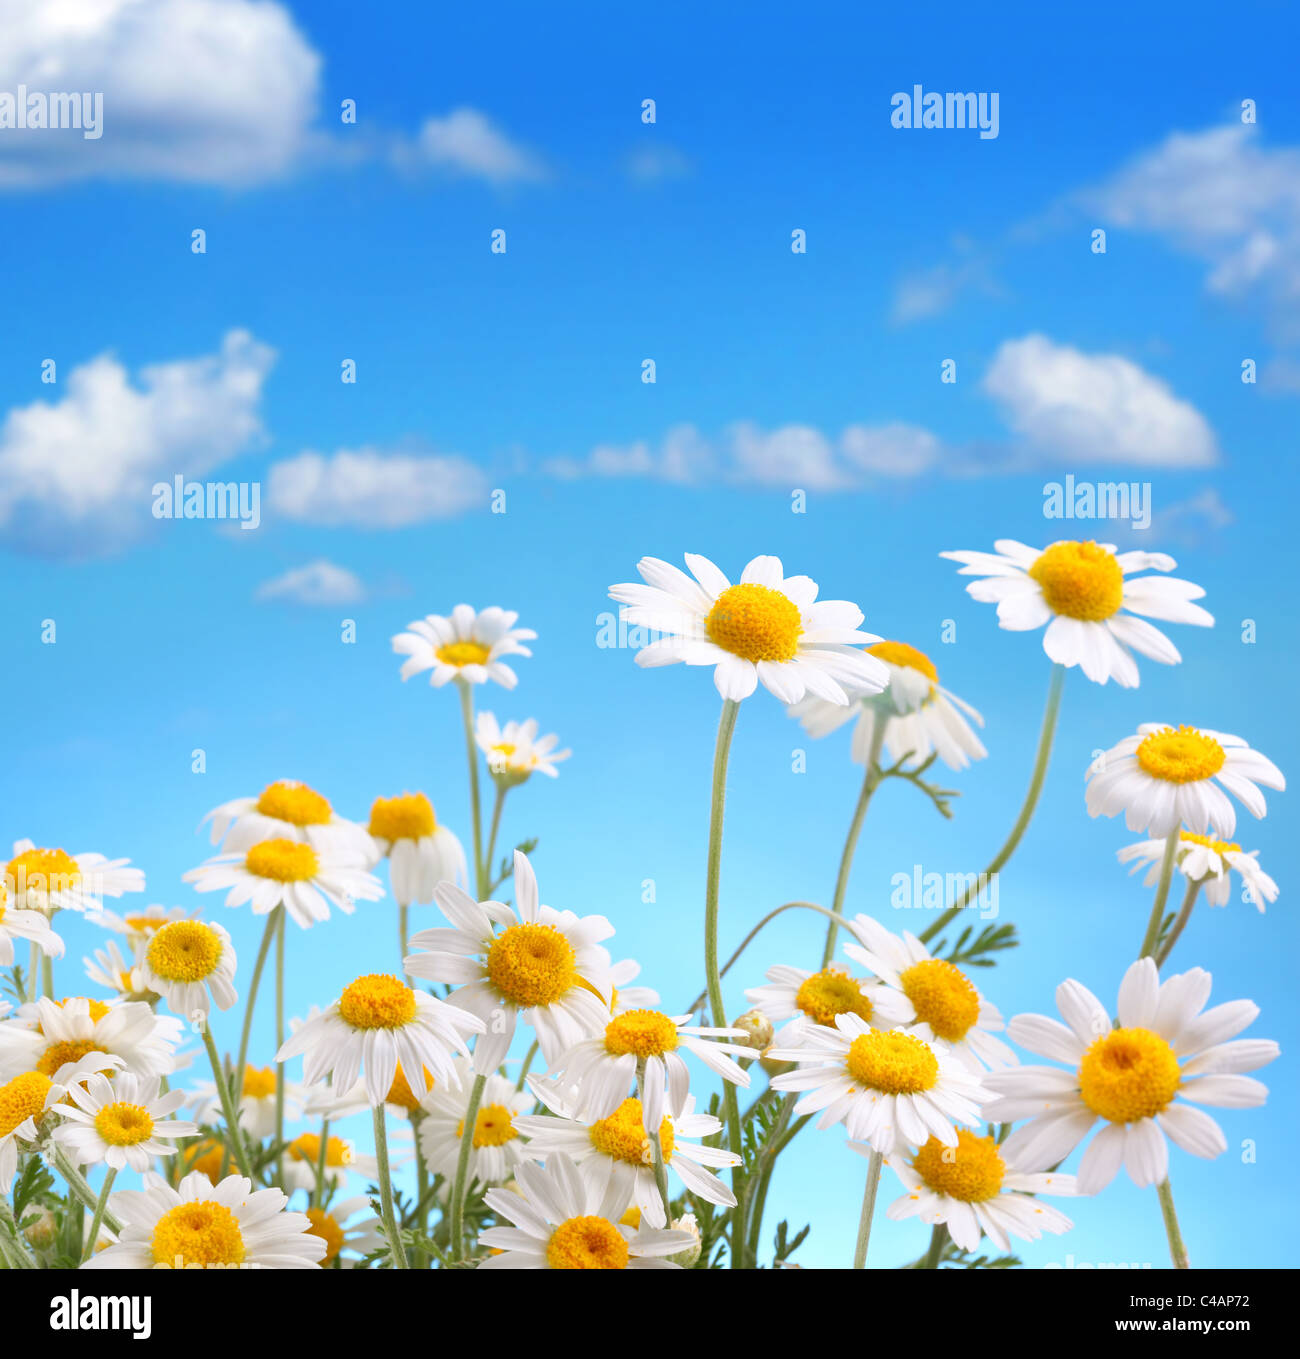 Daisy bouquet on blue sky background Stock Photo